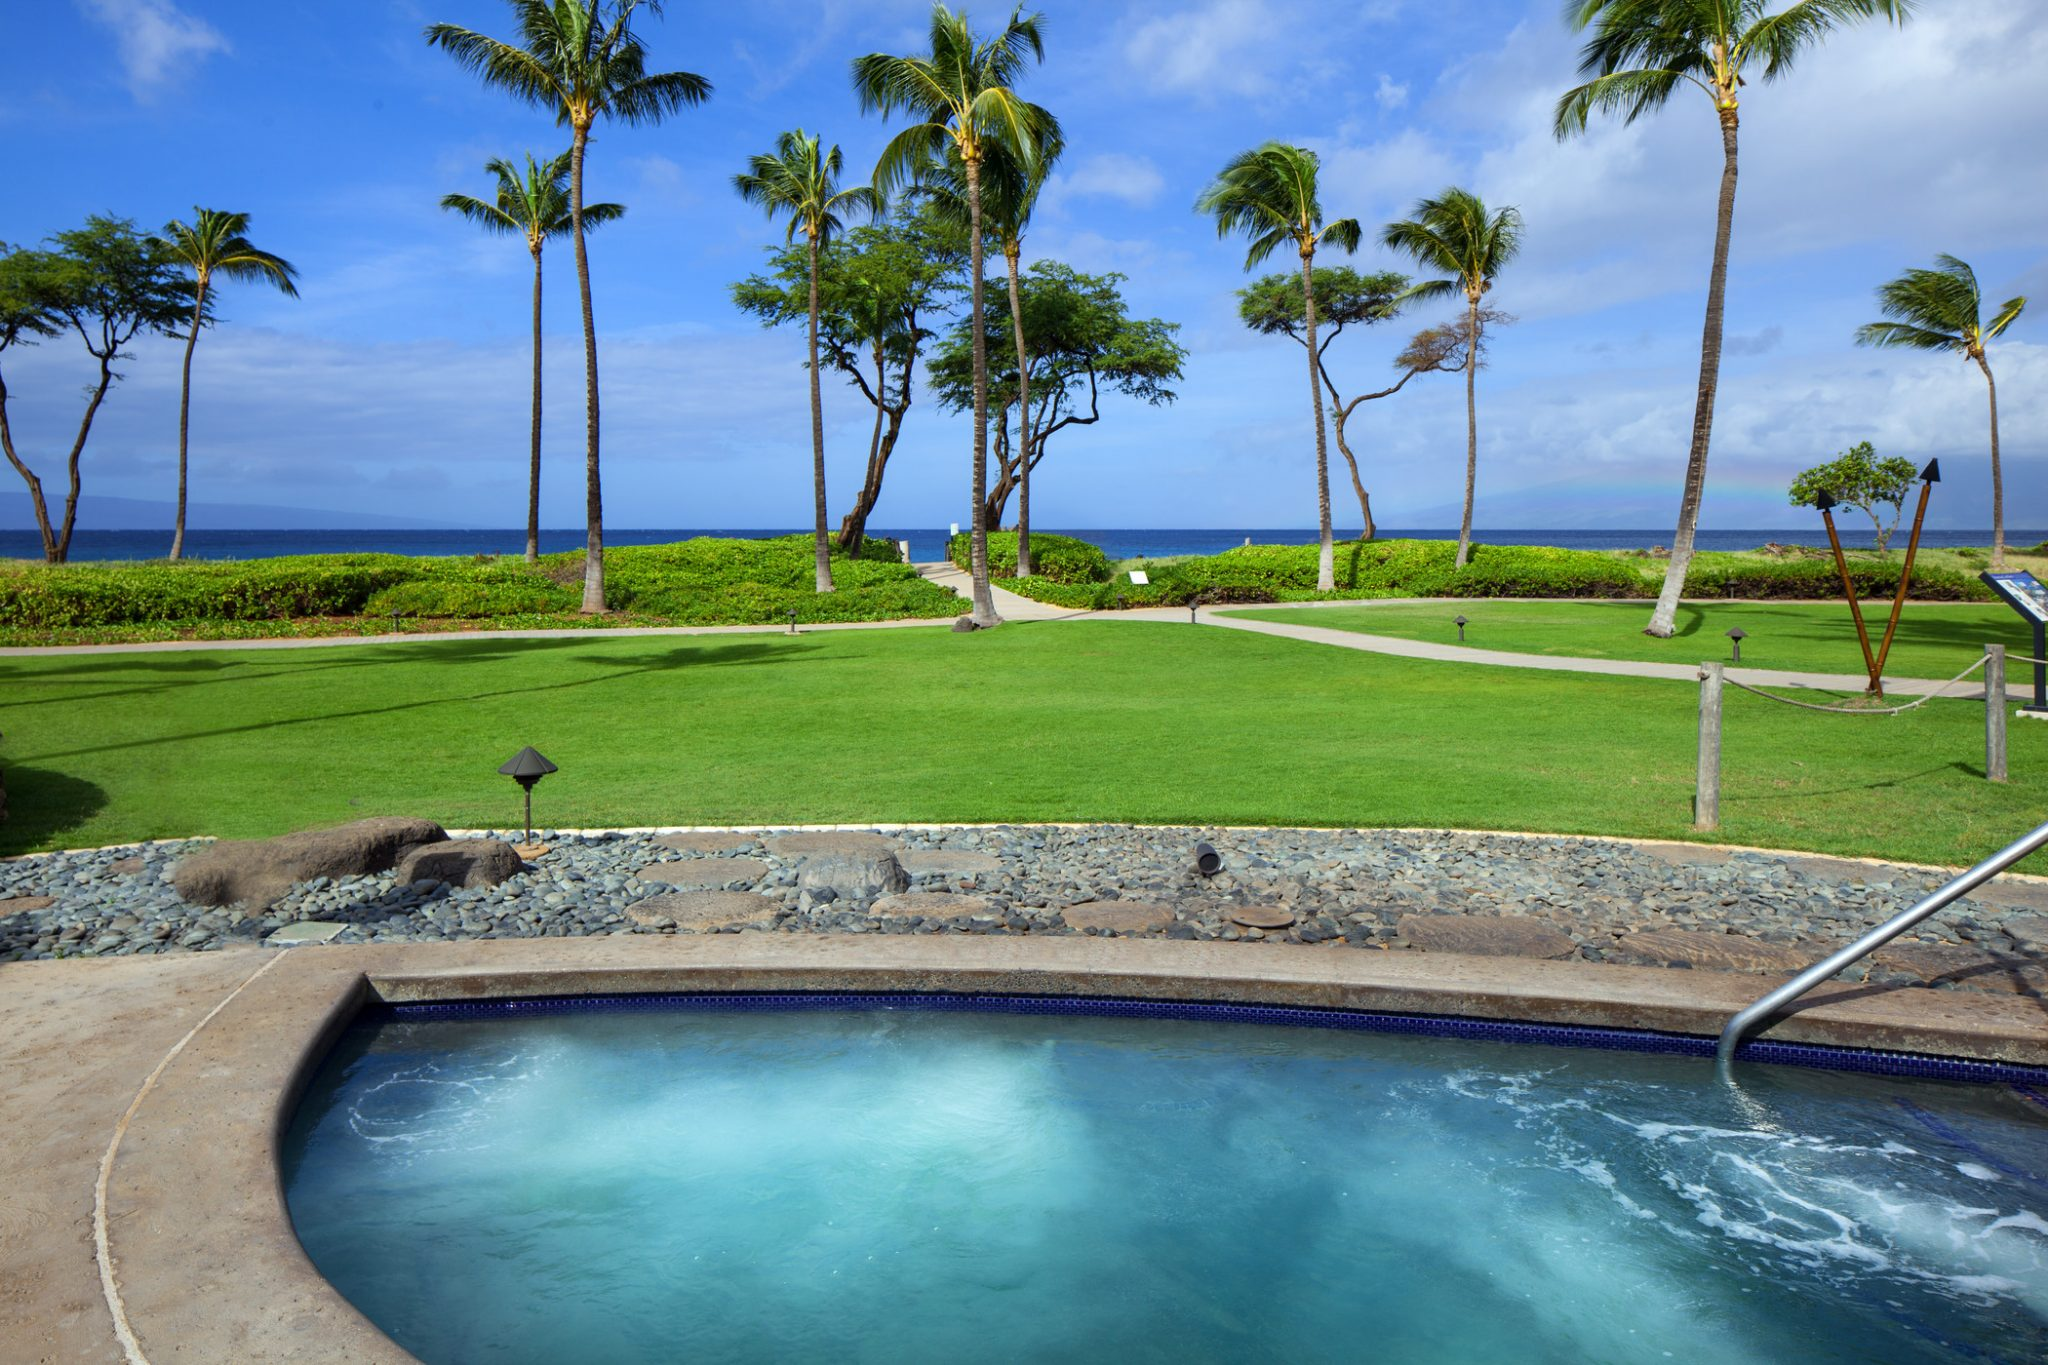 Whirlpool Pool Jacuzzi Hotel Amenities Maui Holiday Villas